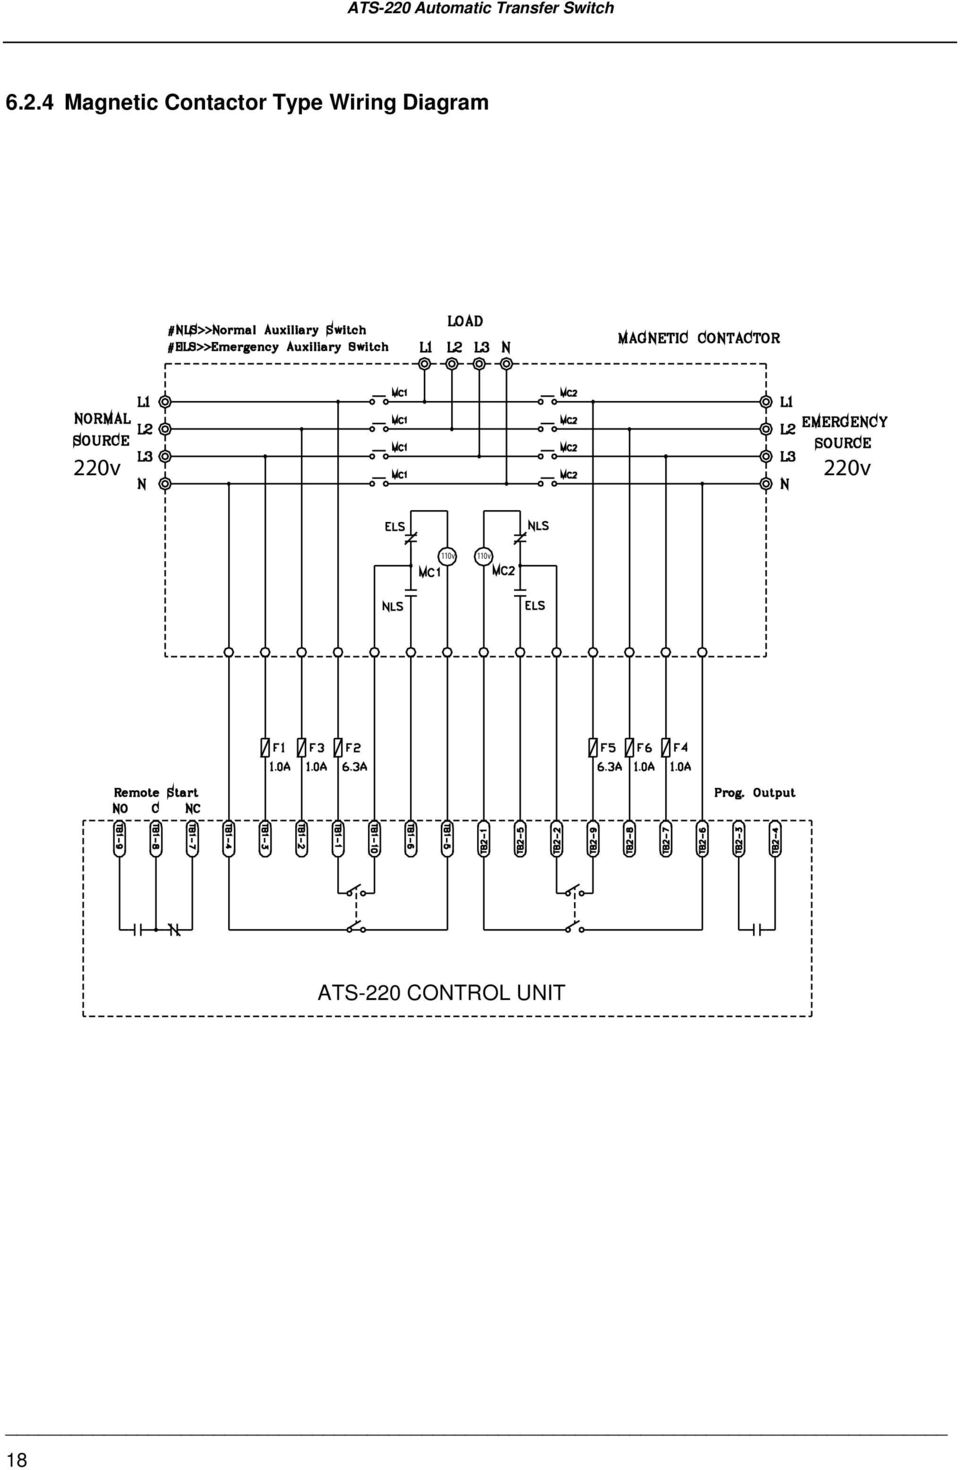 automatic transfer switch control wiring diagram wiring library rh 17 imkeroemermann nl